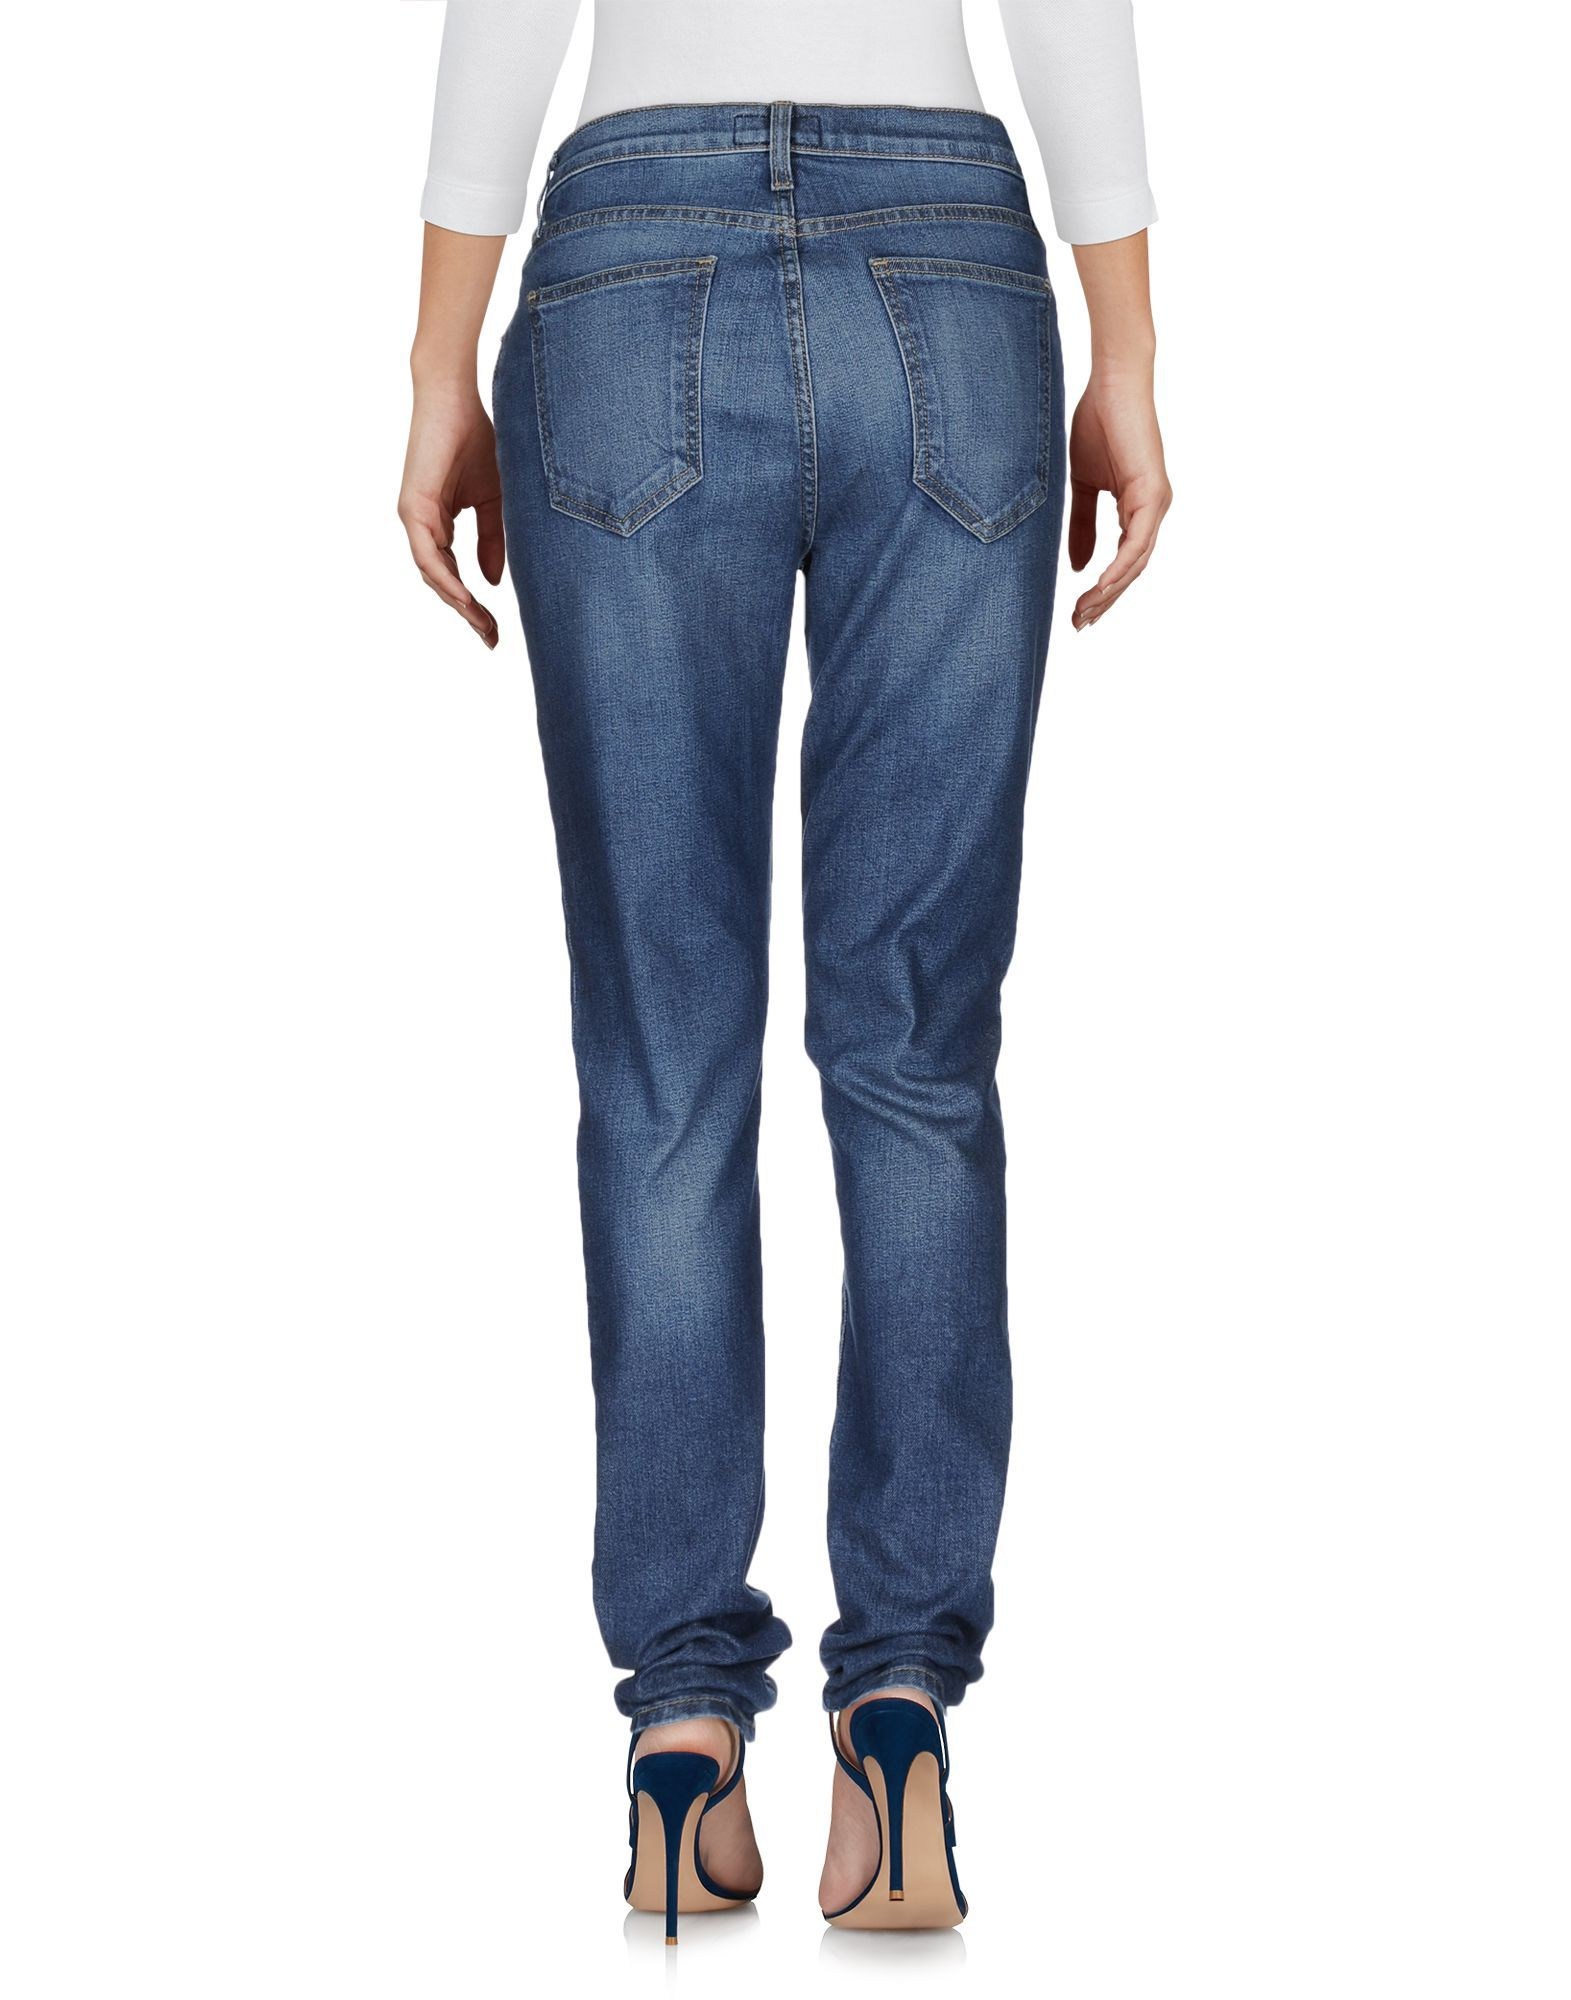 Current/Elliott Blue Cotton Pantaloni jeans